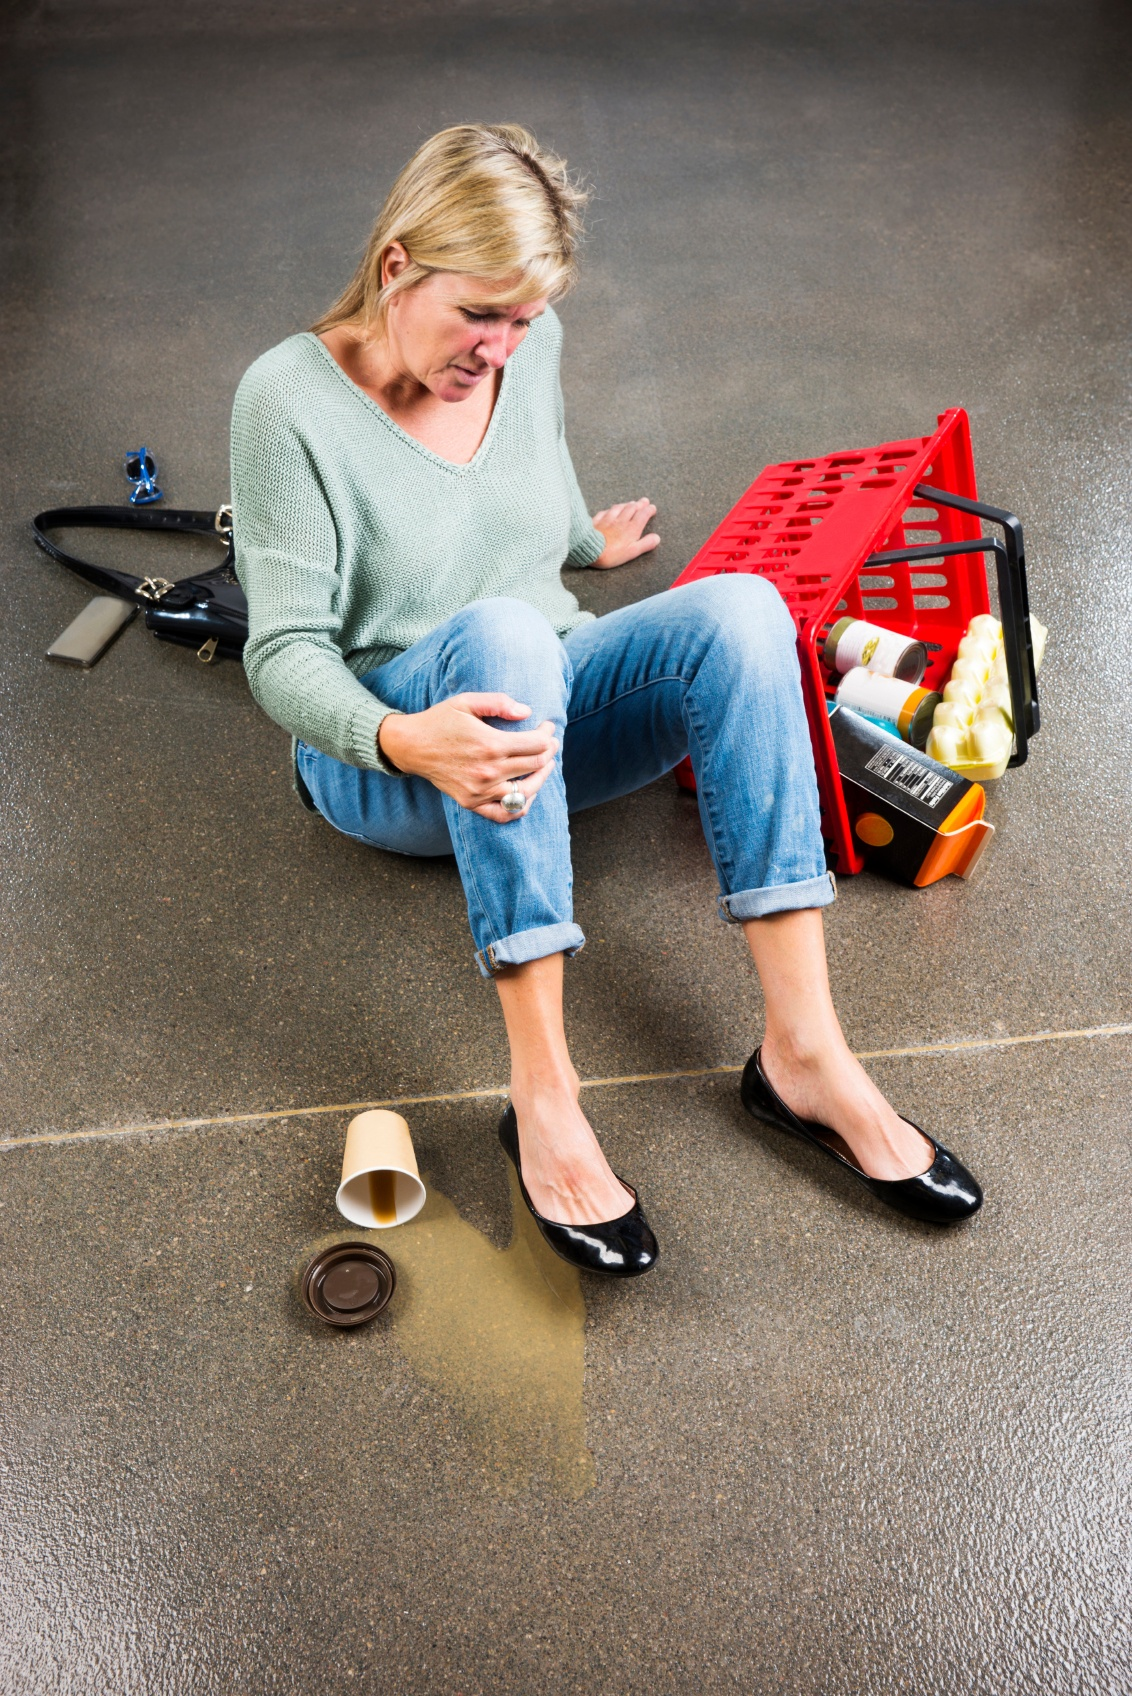 Best Atlanta Slip and Fall Injury Lawyer